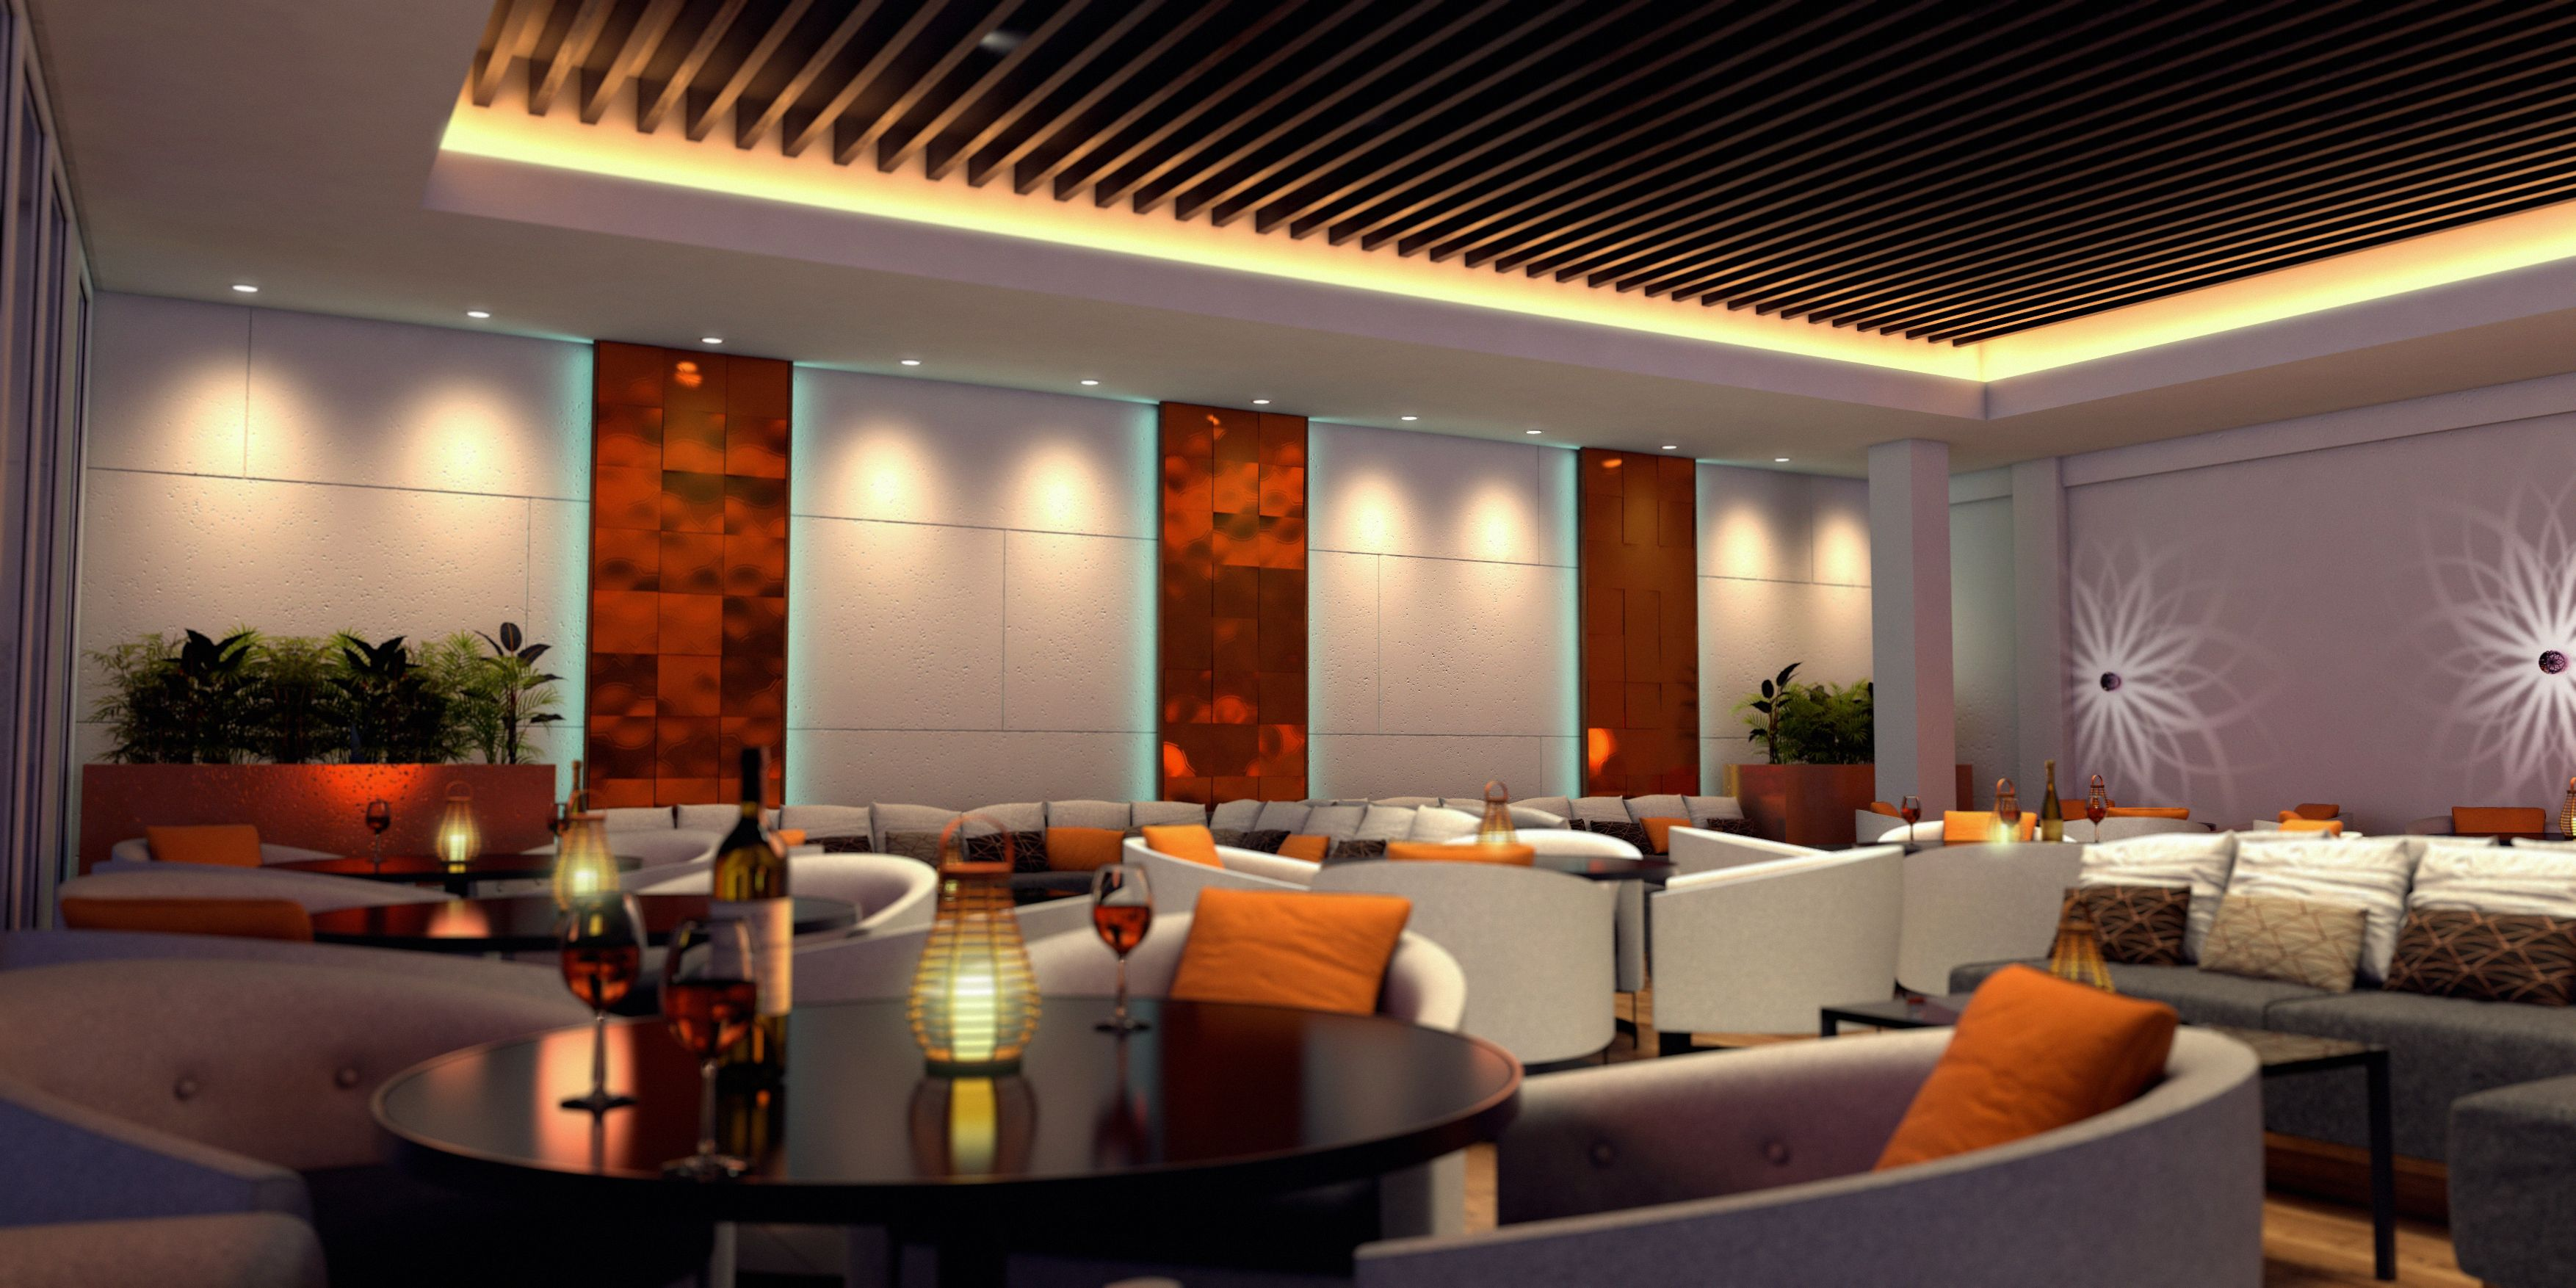 Restaurant Design Concepts Interior Design Concept  Royal Golf Club Bahrainrestaurant